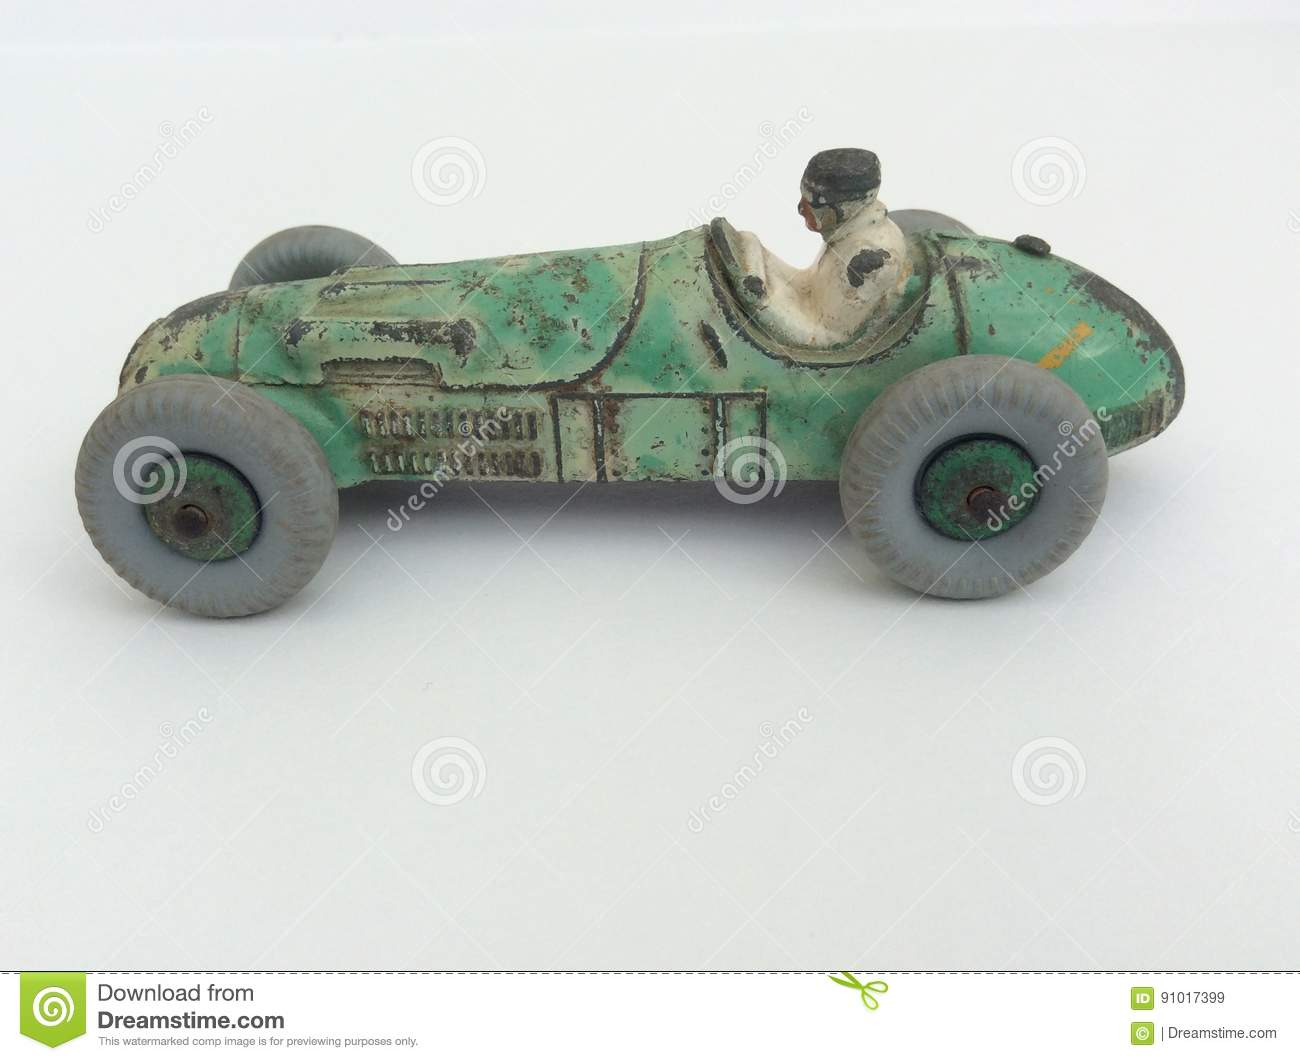 Vintage Toy Racing Car And Driver Worn Green Paint On A White Background With Copy Space Stock Image Image Of Left Automobile 91017399